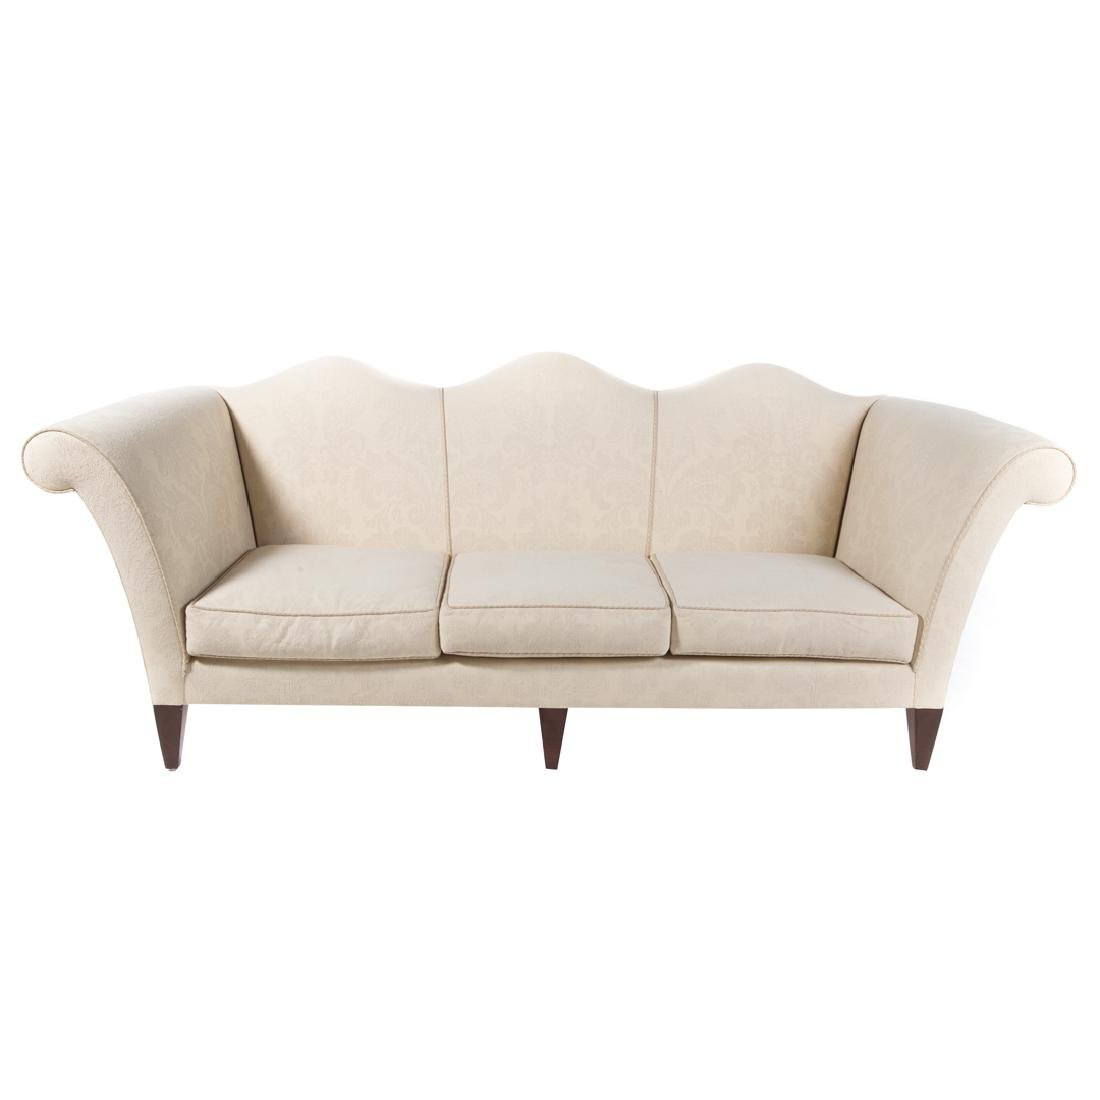 Donghia Contemporary upholstered sofa